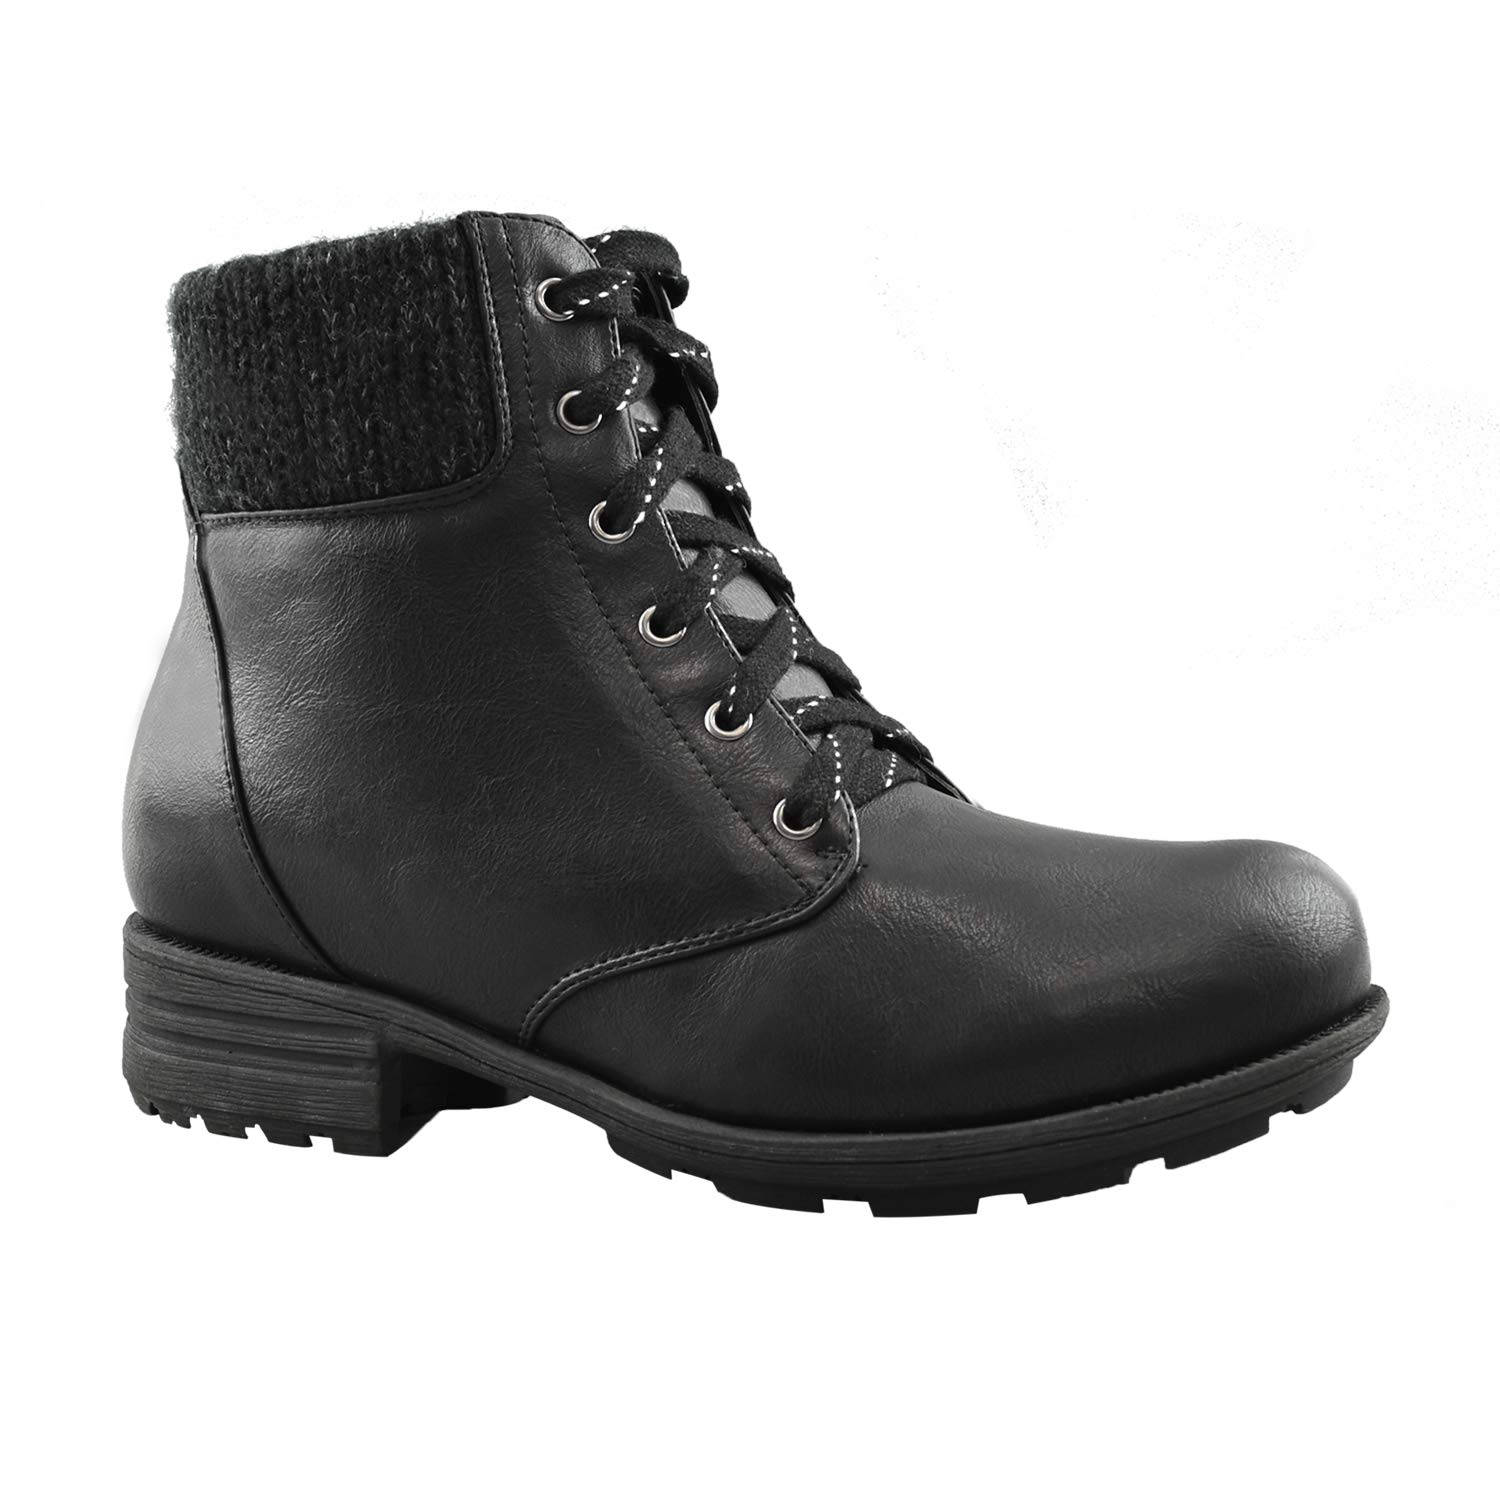 Comfy Moda Women's Winter Boots 3M™ Thinsulate™ Memory Foam Super Warm Comfy Wide Fitting size 12 available - Hunter